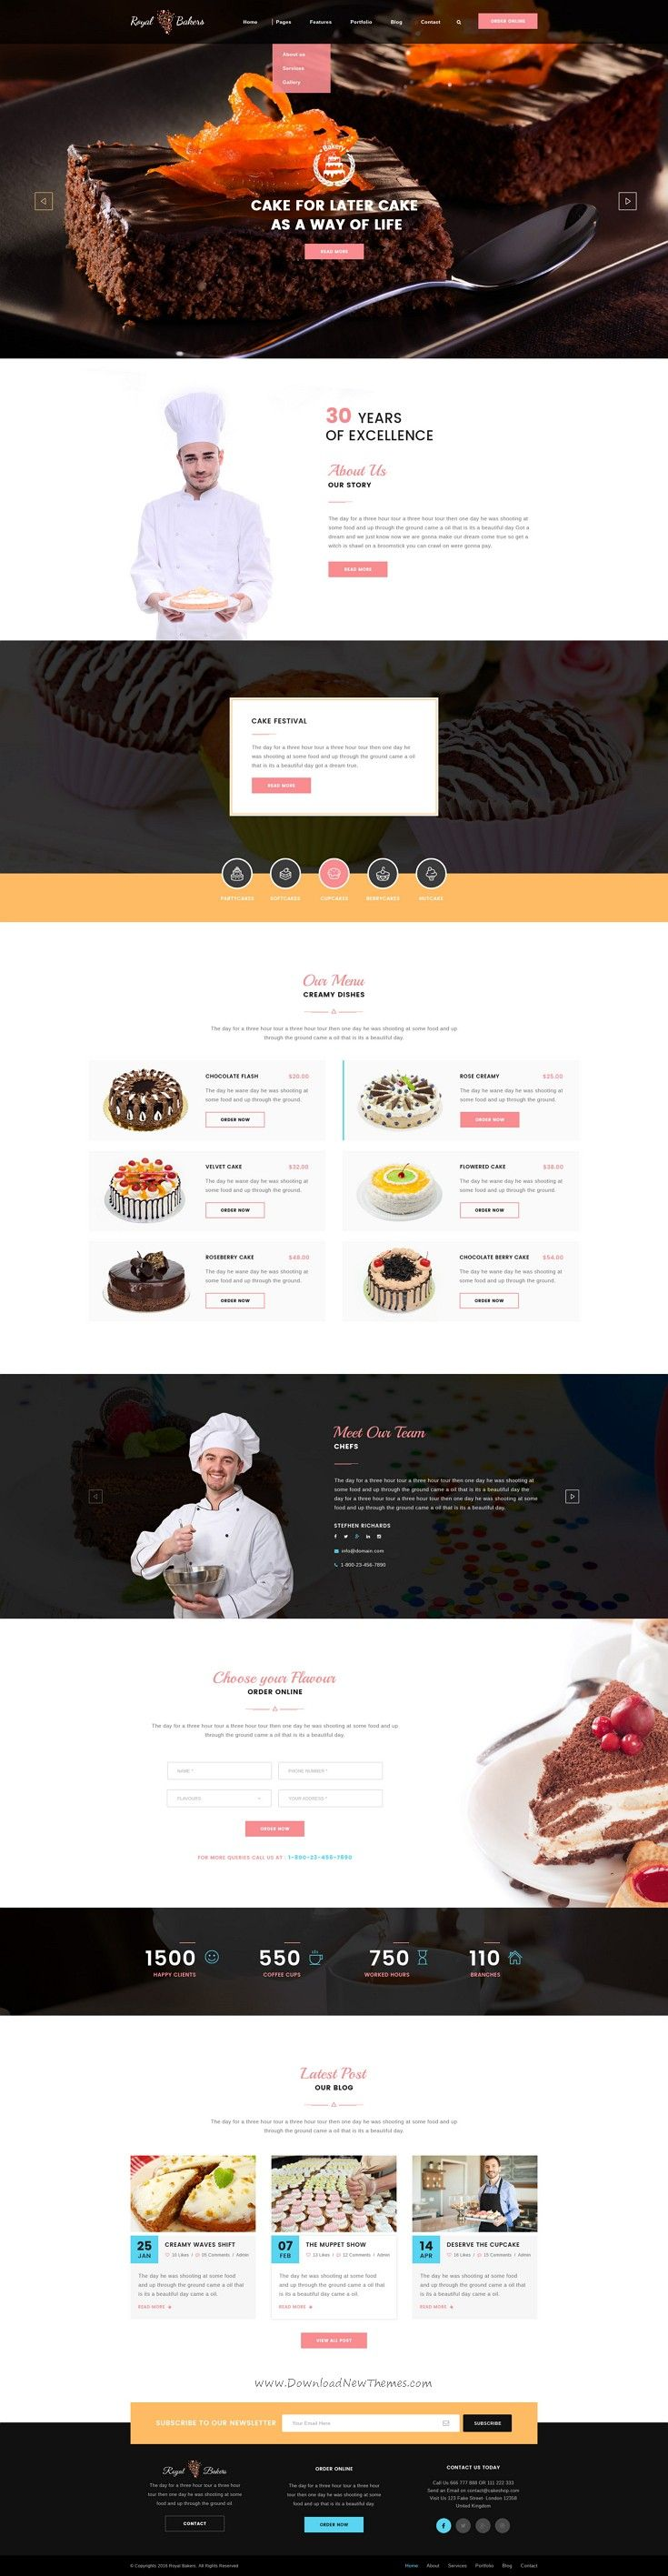 Royal Bakers is beautiful Cakery PSD Template download now. #bakery #cake #website